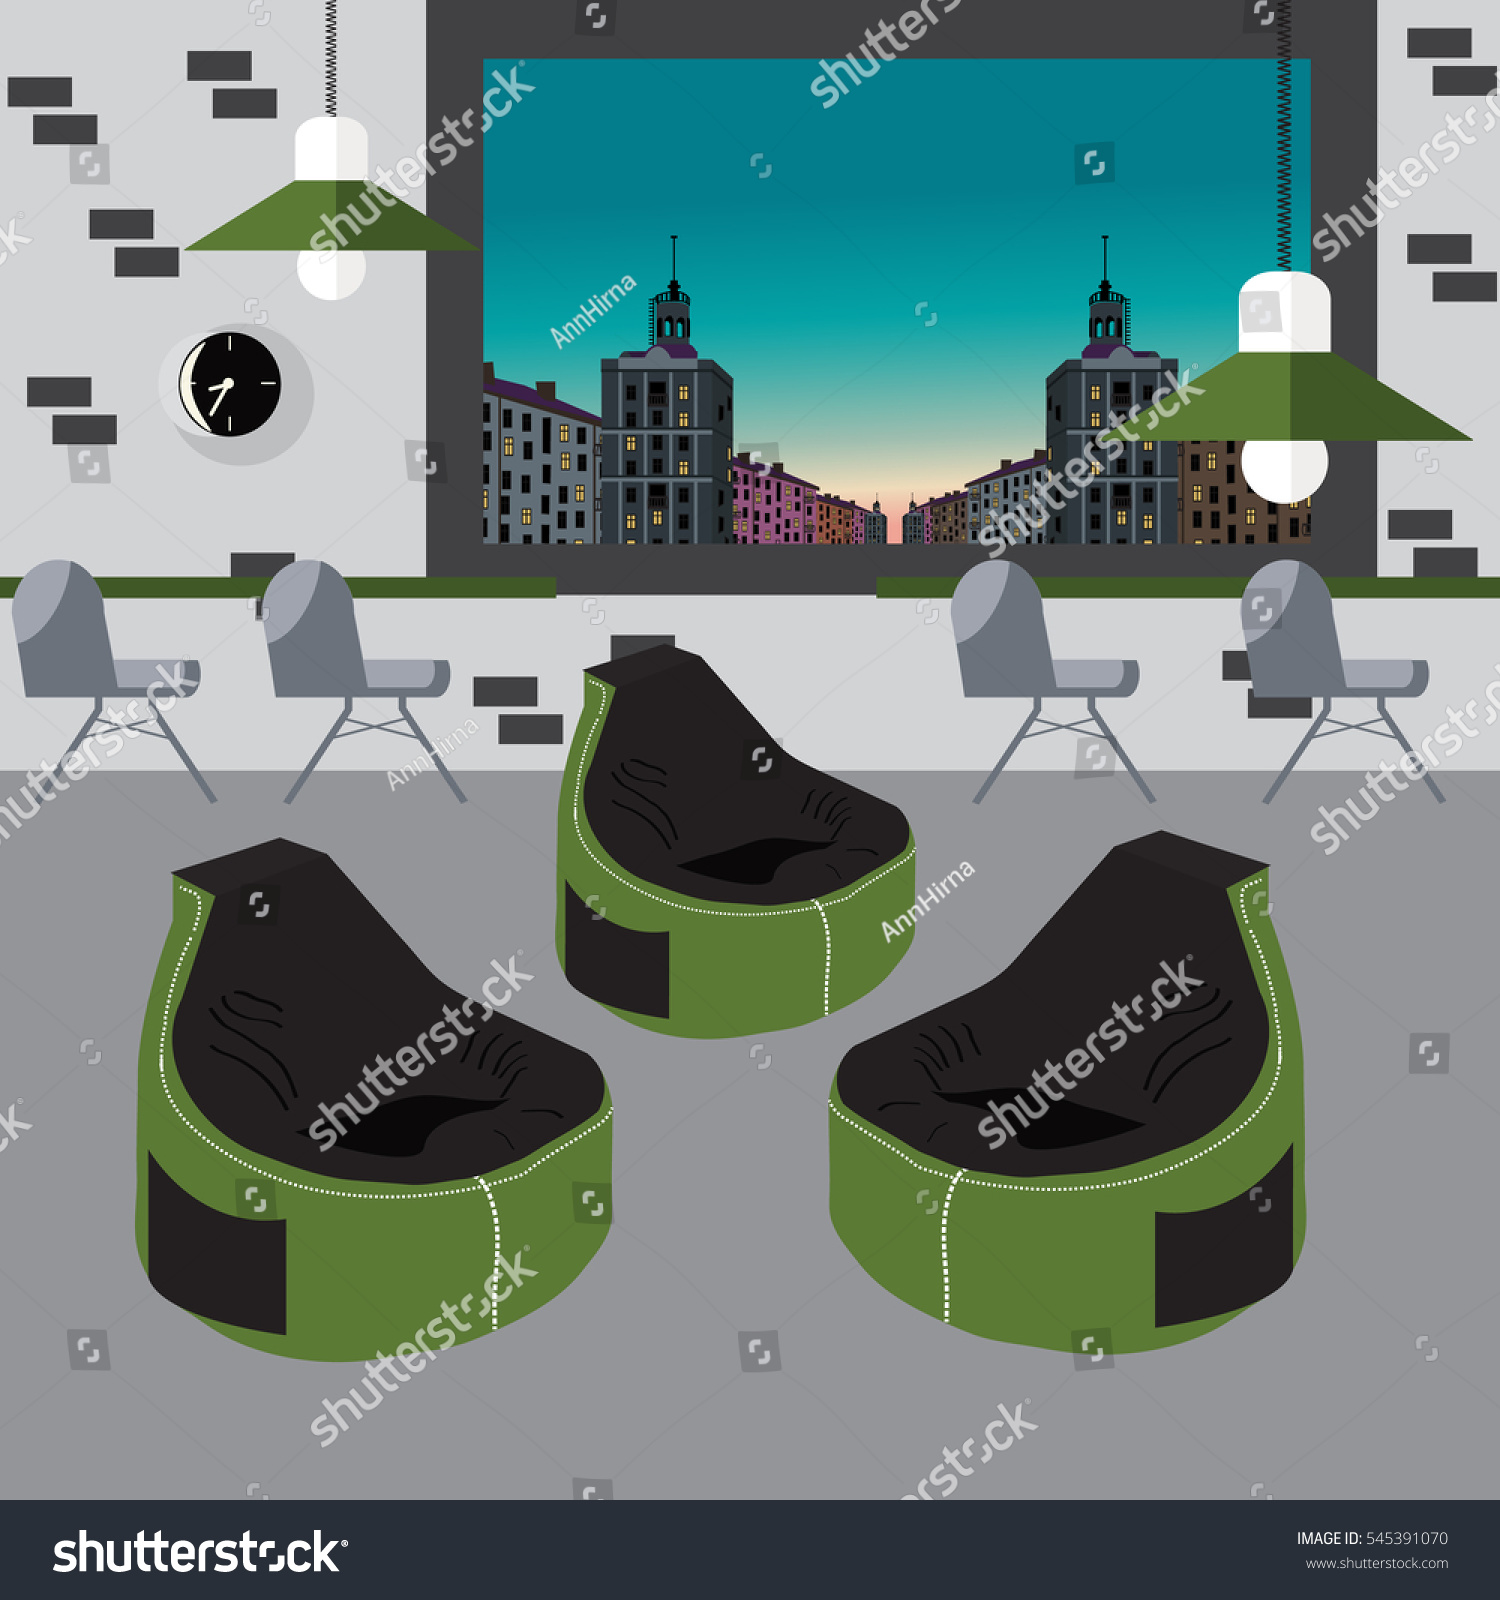 Bean Bag Chair With City View From Window Good Idea For Office Workplace Interior